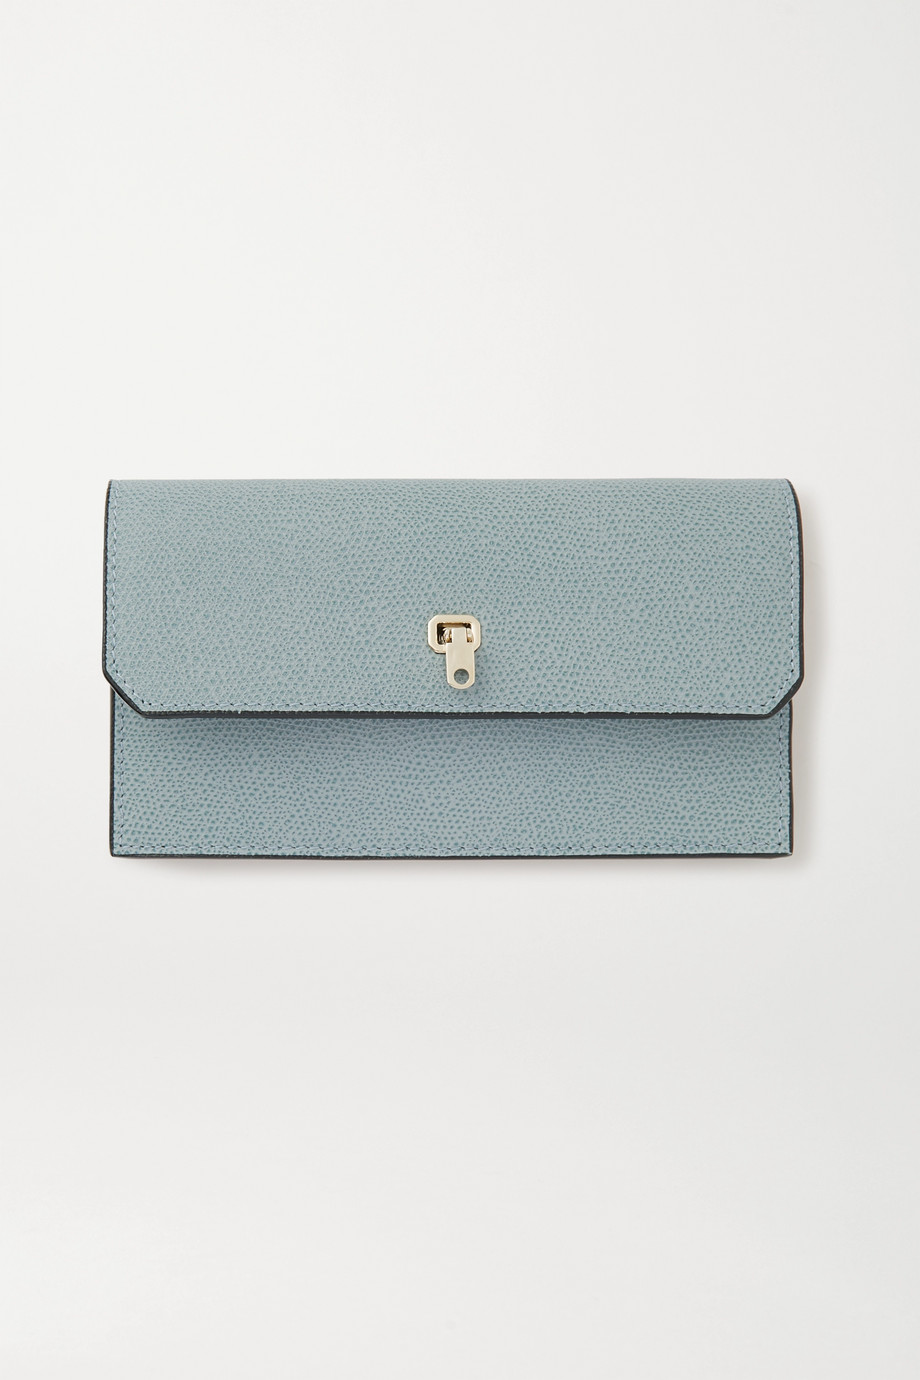 Valextra Brera textured-leather wallet and cardholder set